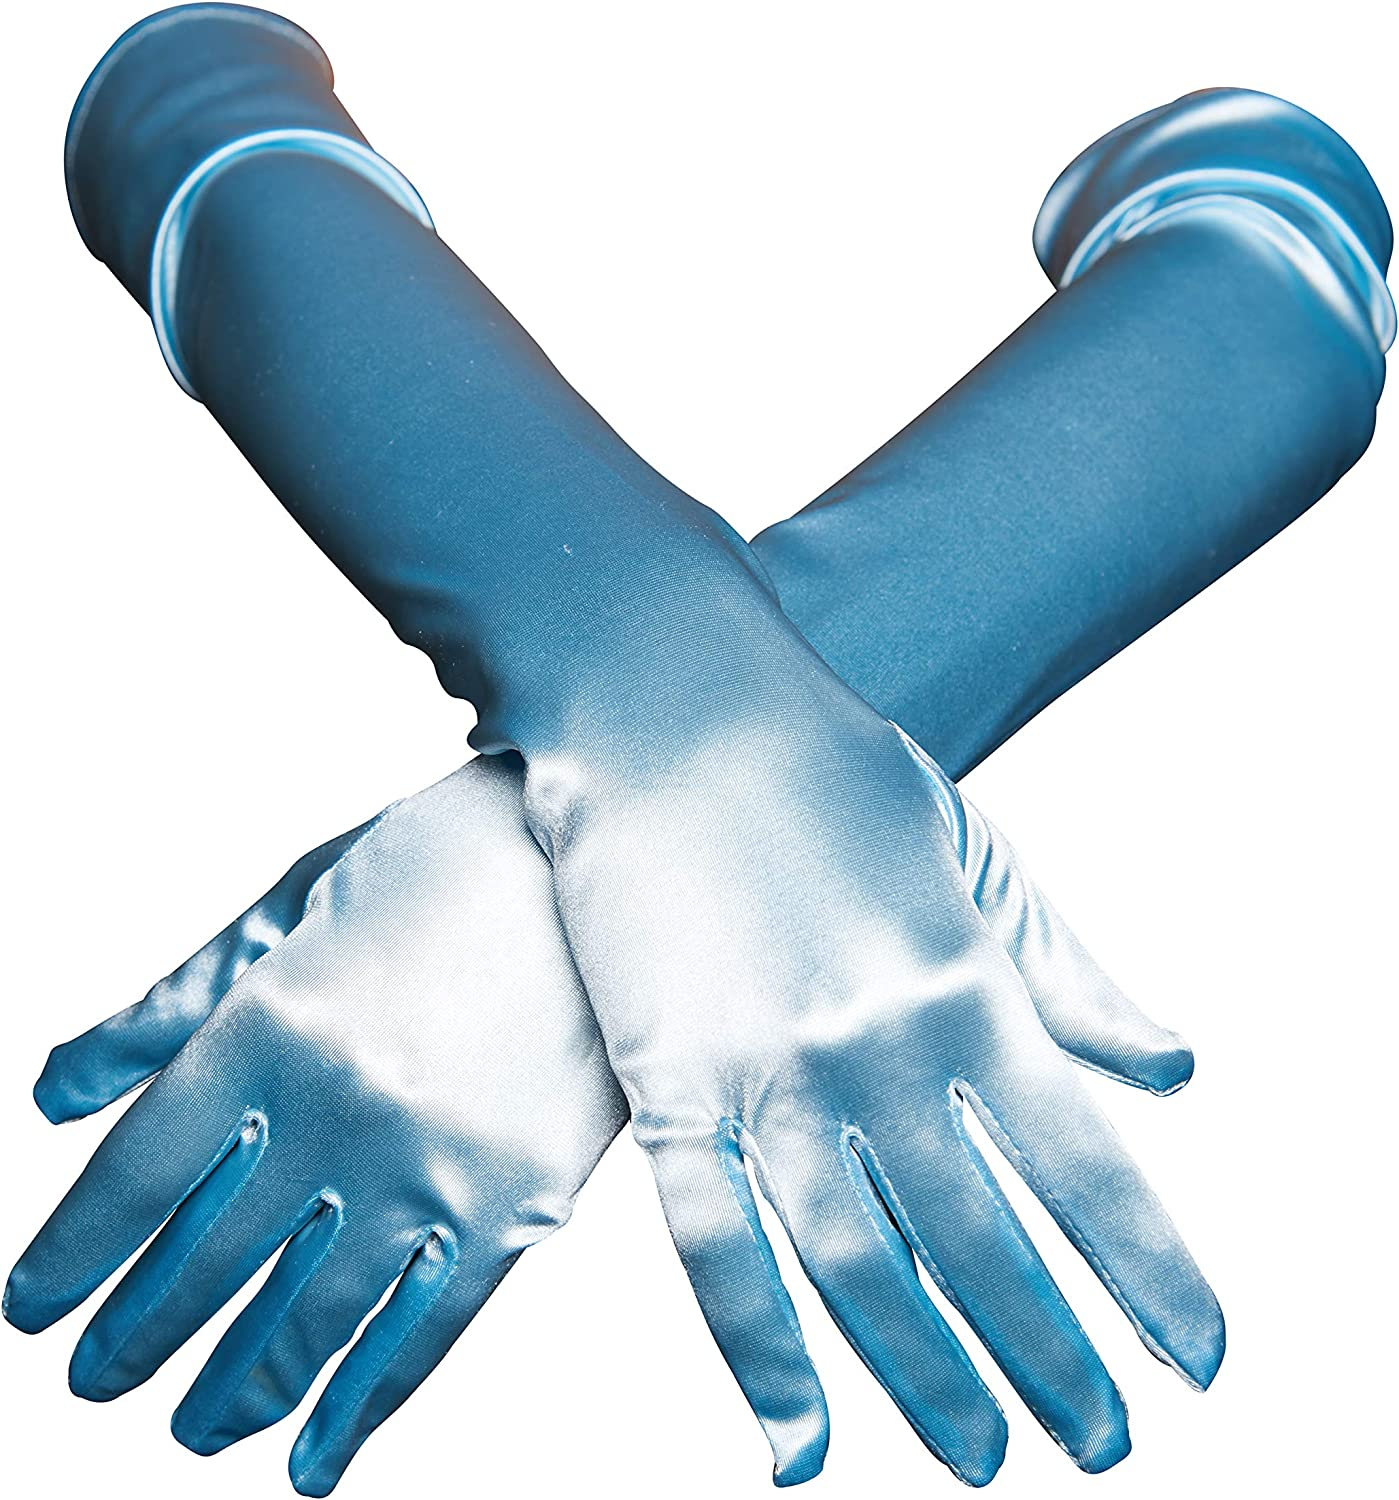 "Women's Satin Evening Gloves - 21"" Long Satin Gloves (Soft Blue)"